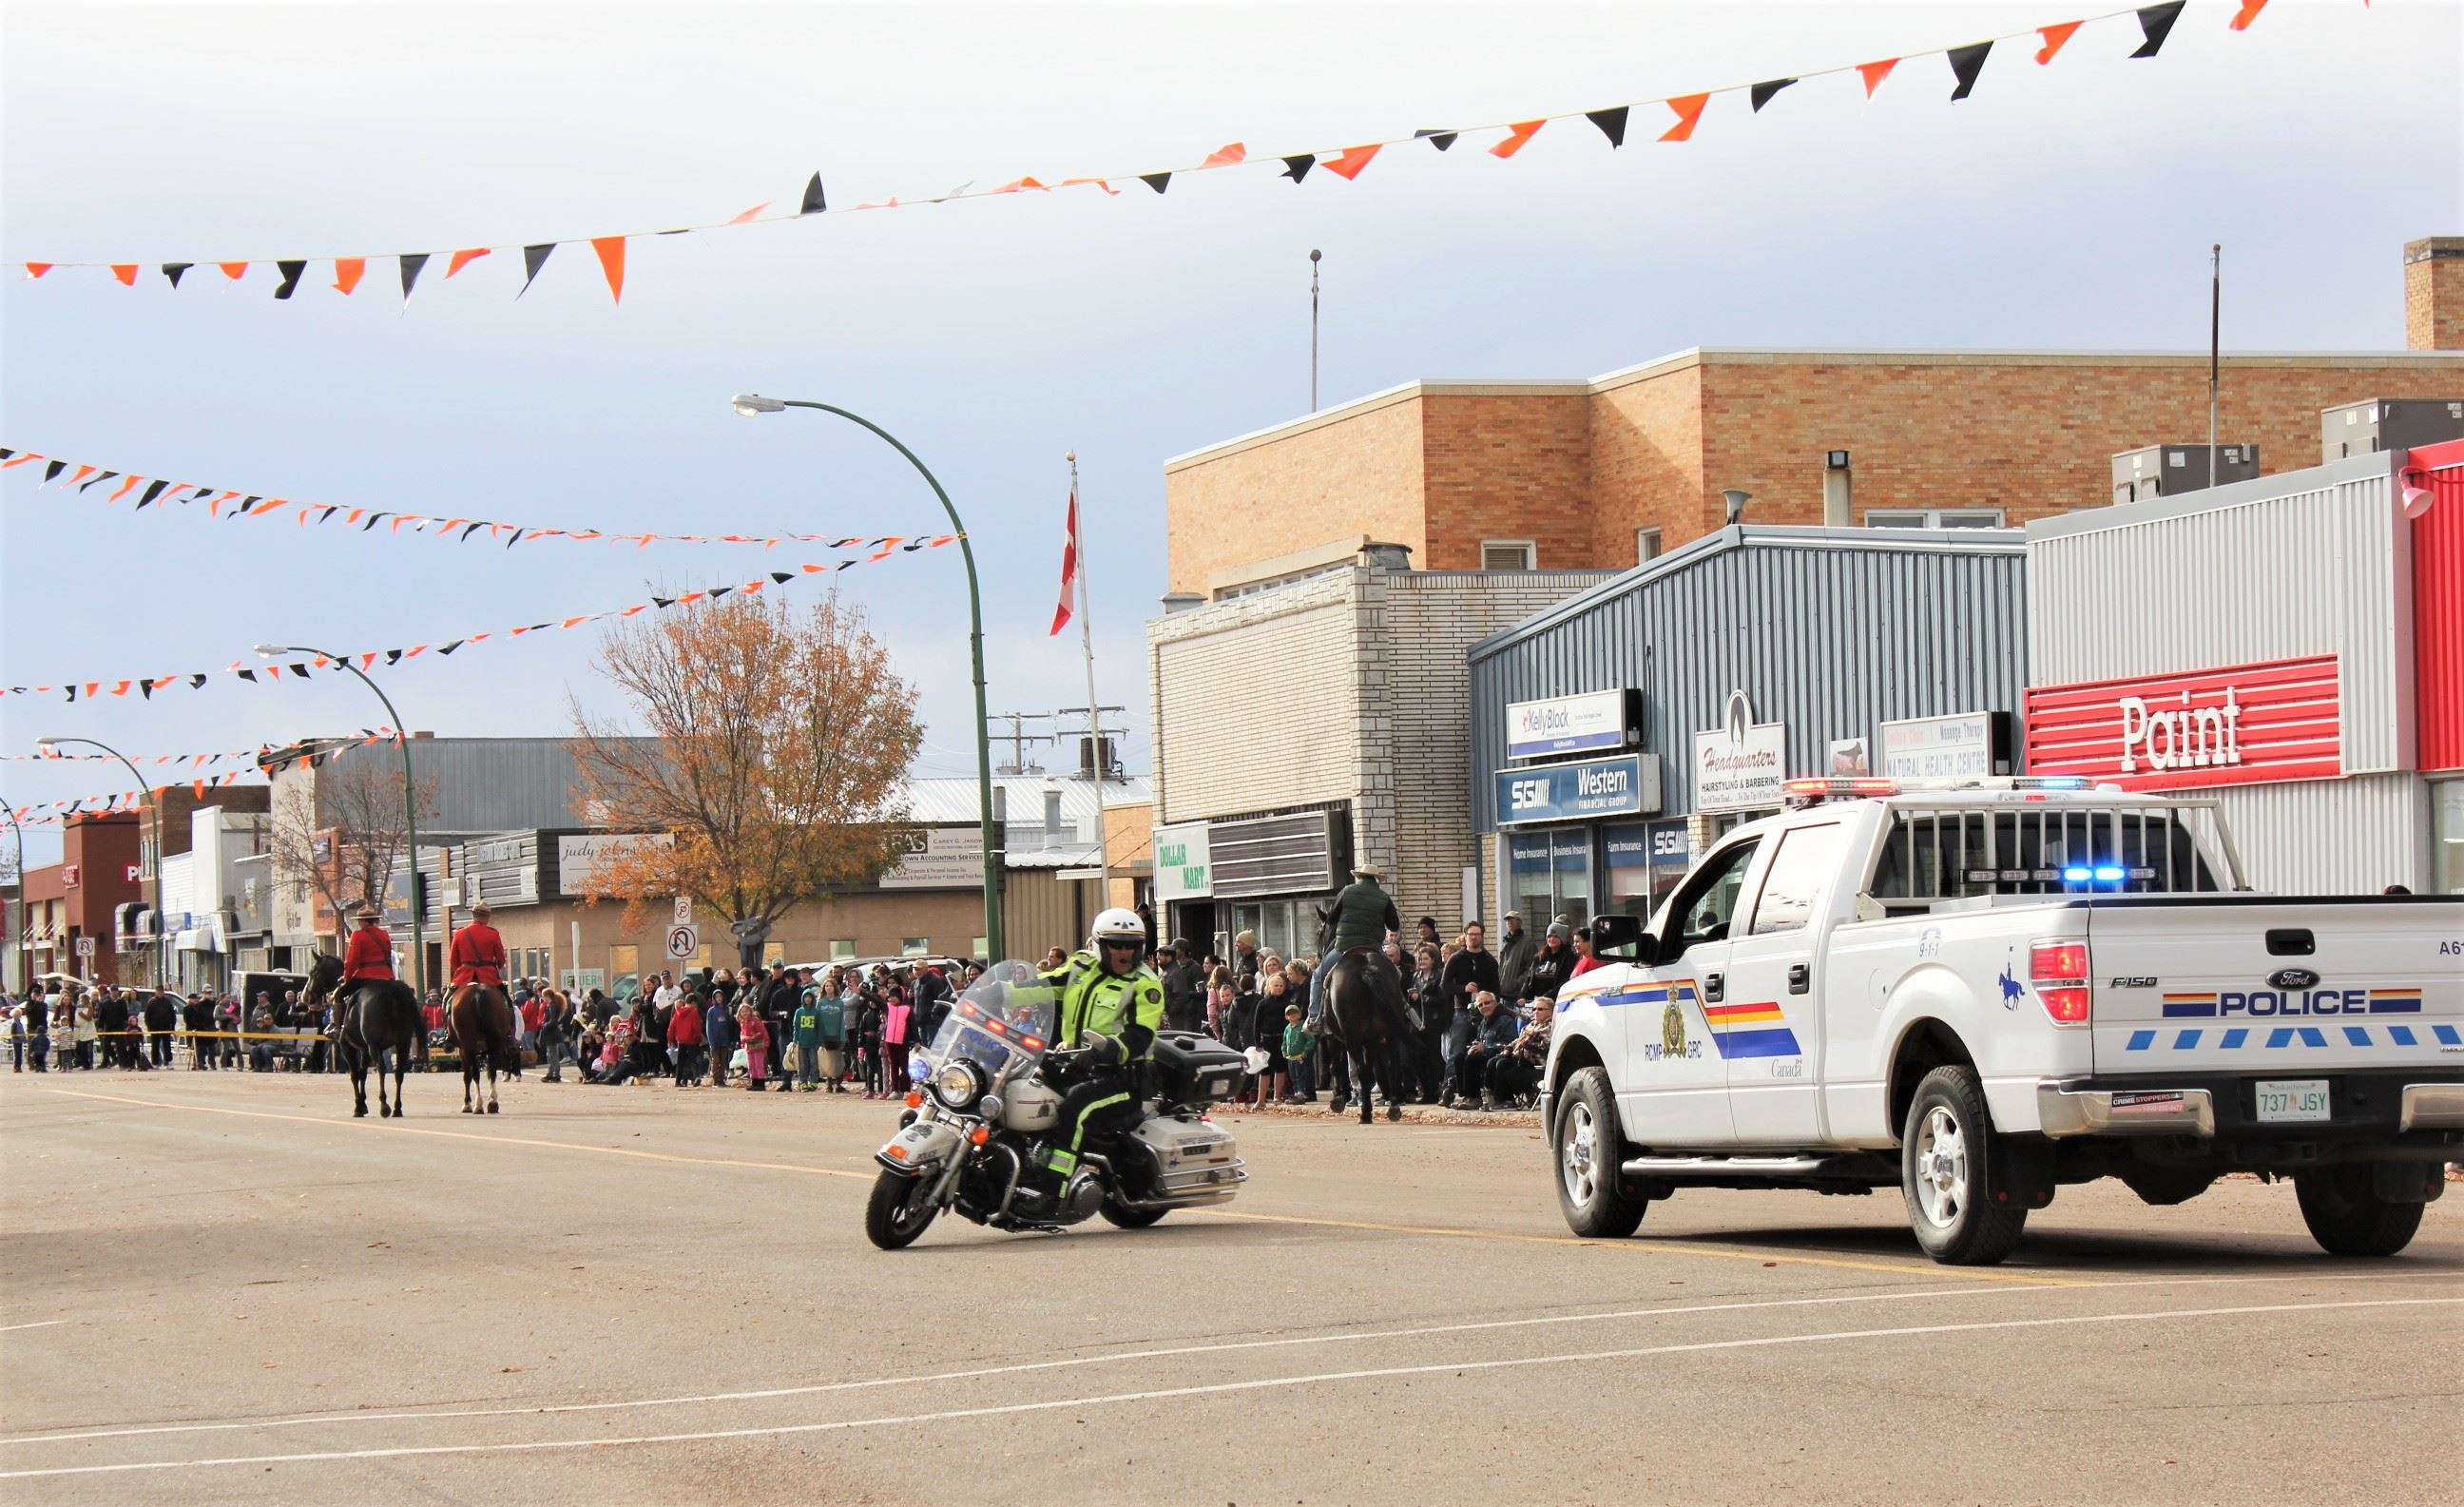 Image of RCMP Truck at Harvest Festival